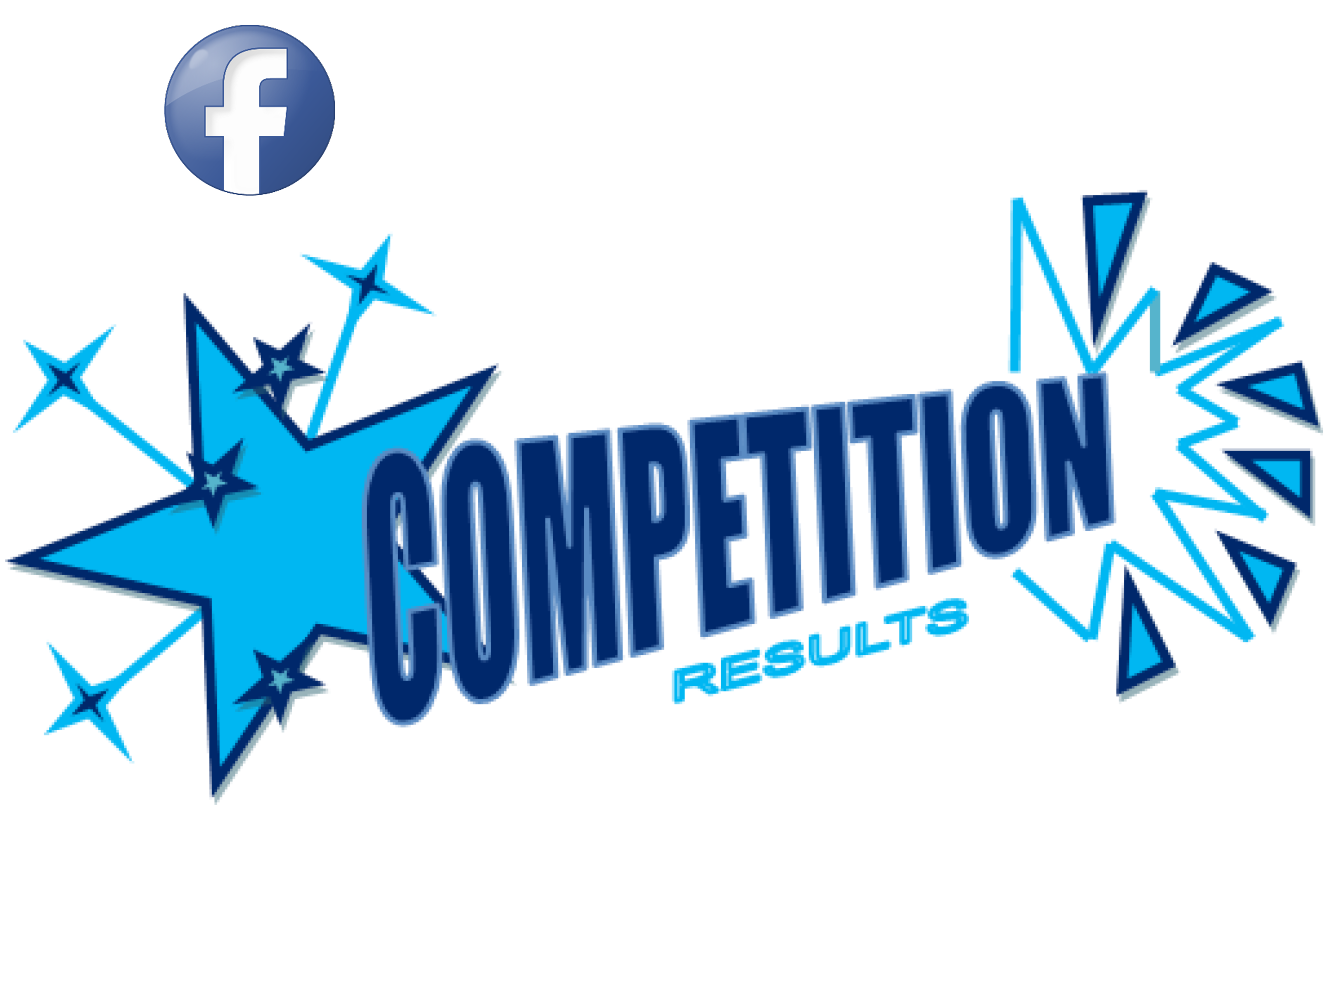 www.facebook.com/groups/northern8ballresults